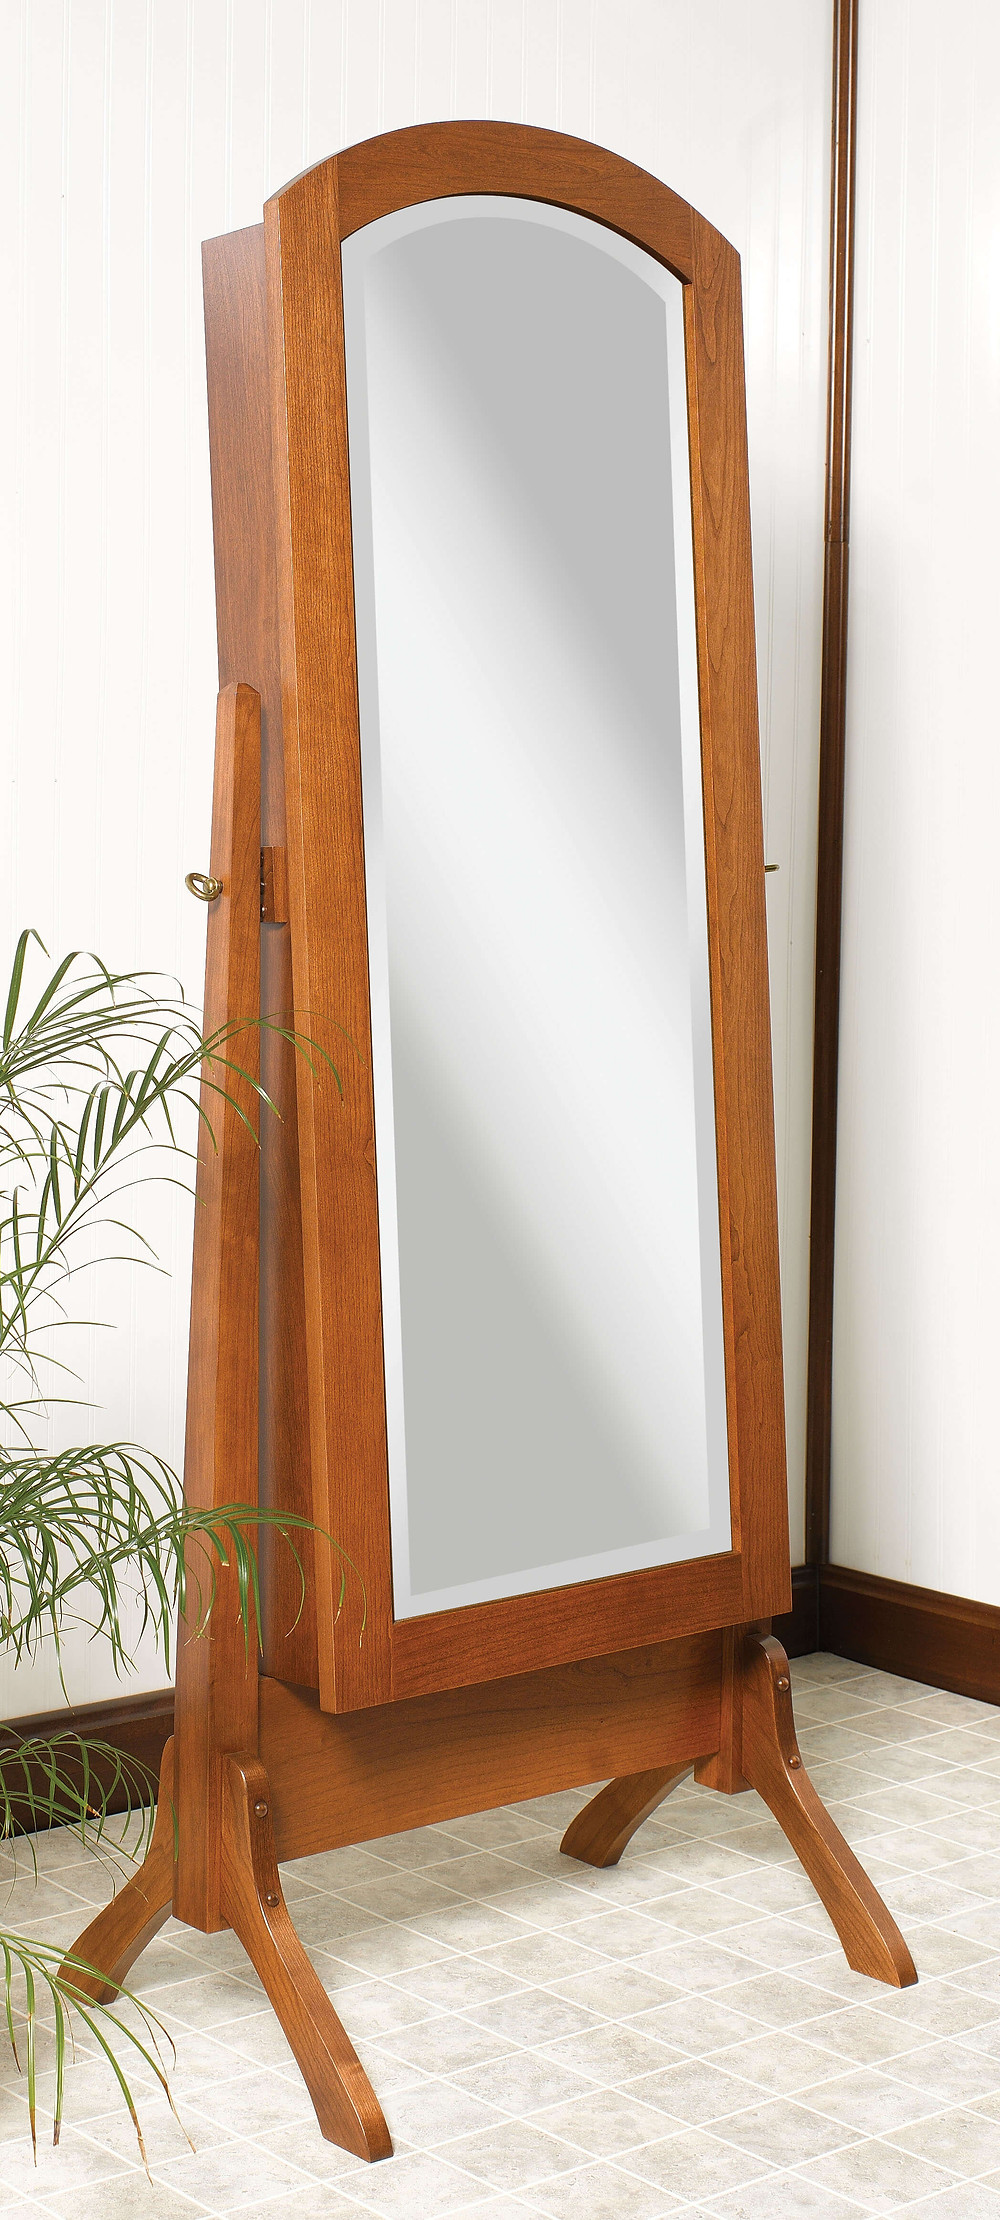 Solid cherry standing cheval mirror with hidden jewelry box solid cherry with michaels stain hardwood furniture amish furniture made in the usa pittsburgh mills